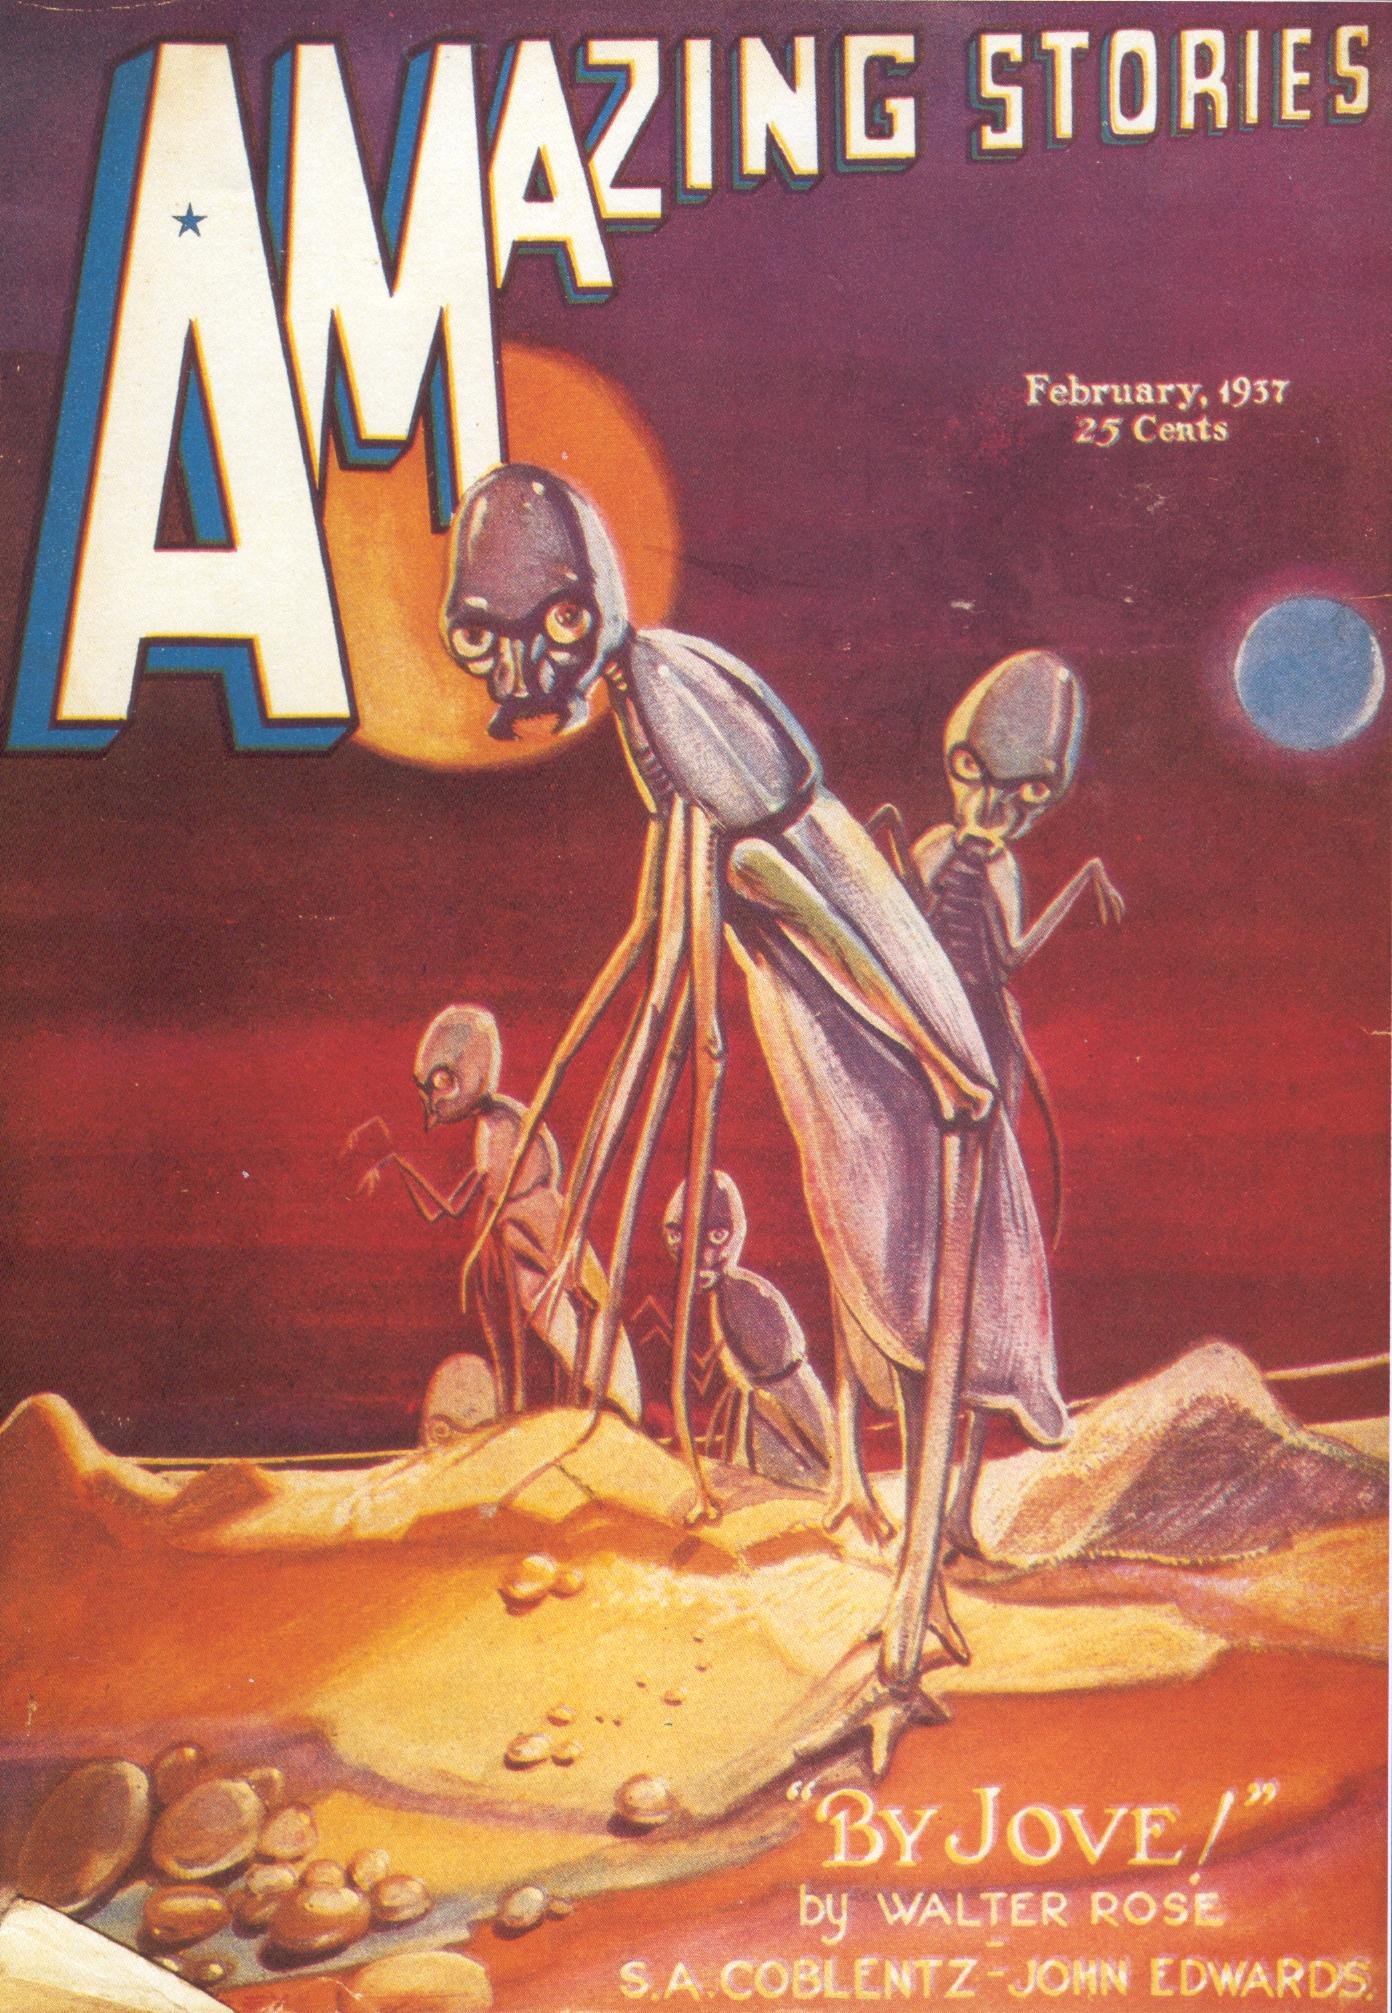 Alien insects appeared in sf pulps, like this 1937 vintage example.